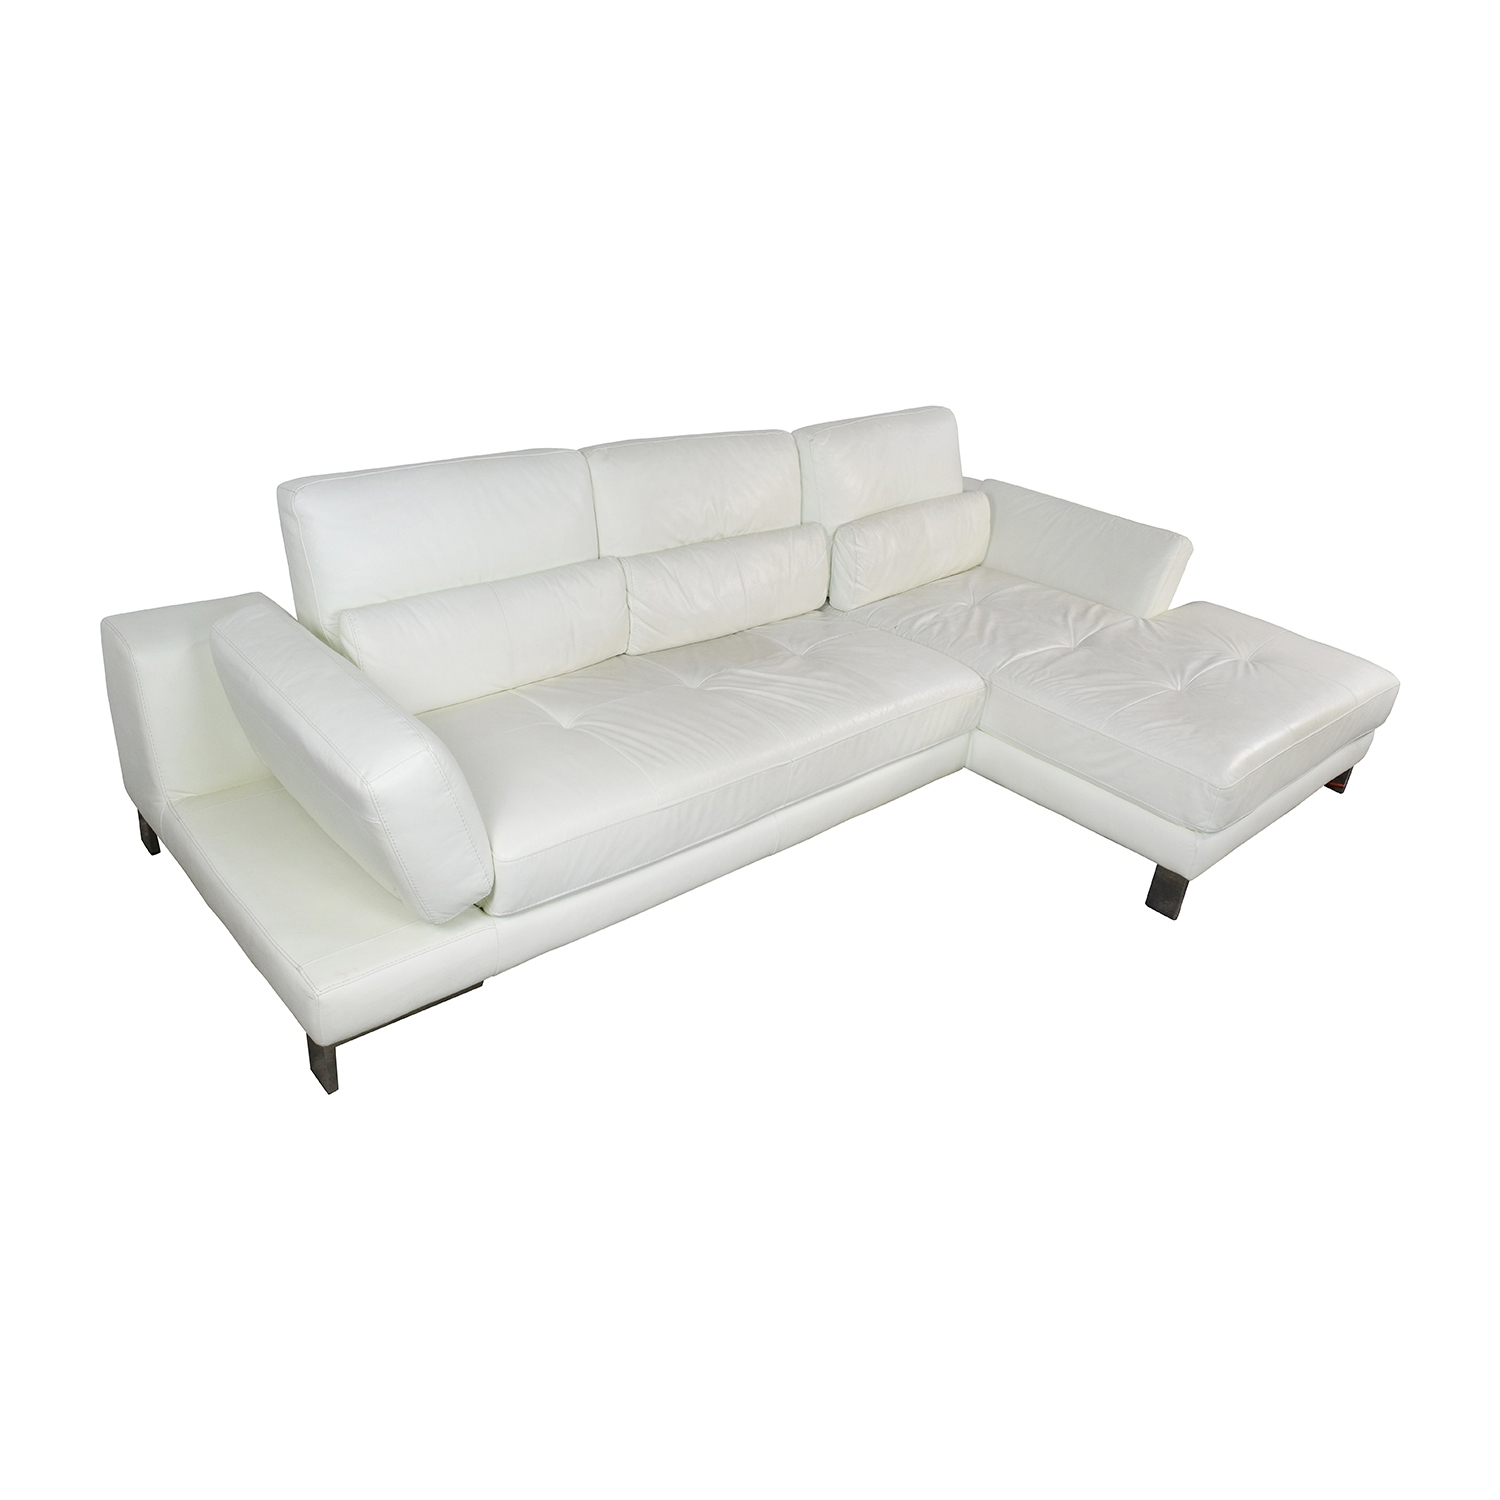 72% Off - Mobilia Canada Mobilia Canada Funktion White Leather with regard to Mobilia Sectional Sofas